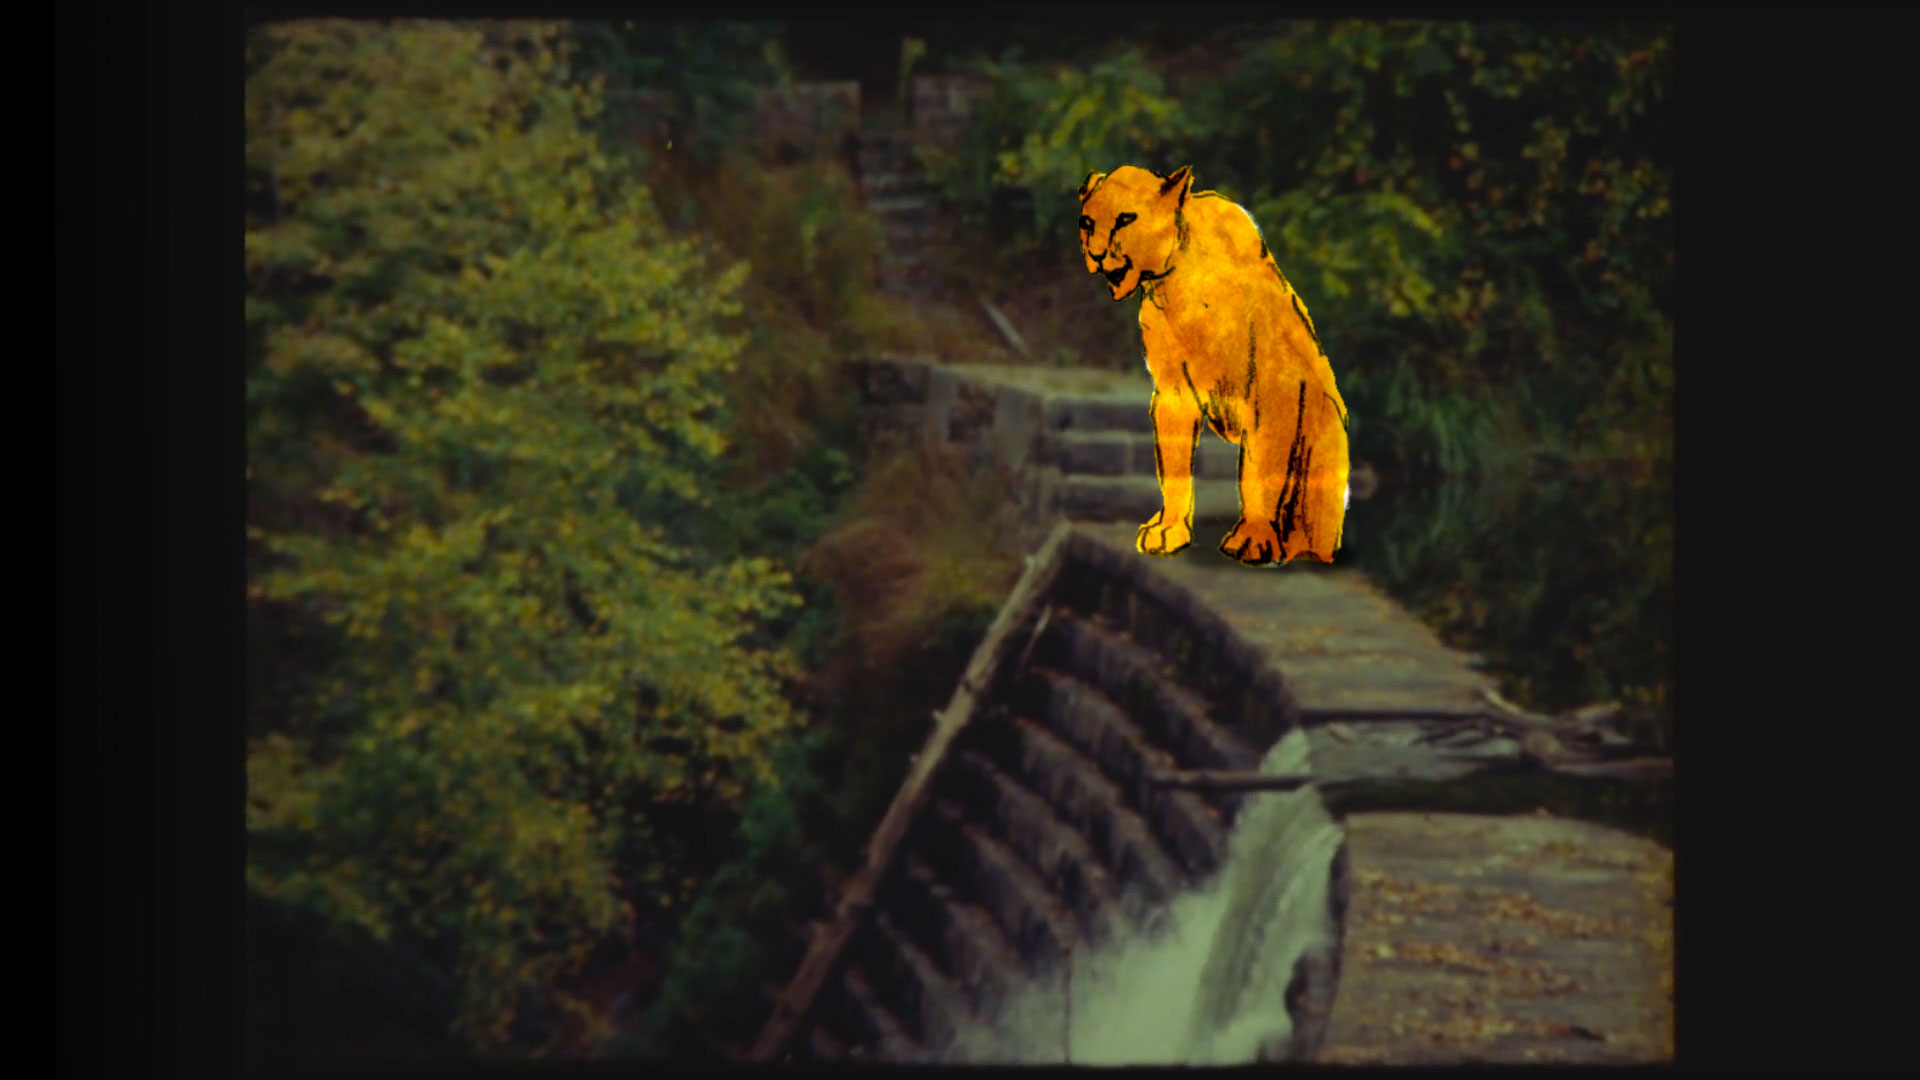 A still from Goldilocks film with an illustrated/animated cougar standing over a real-life waterfall